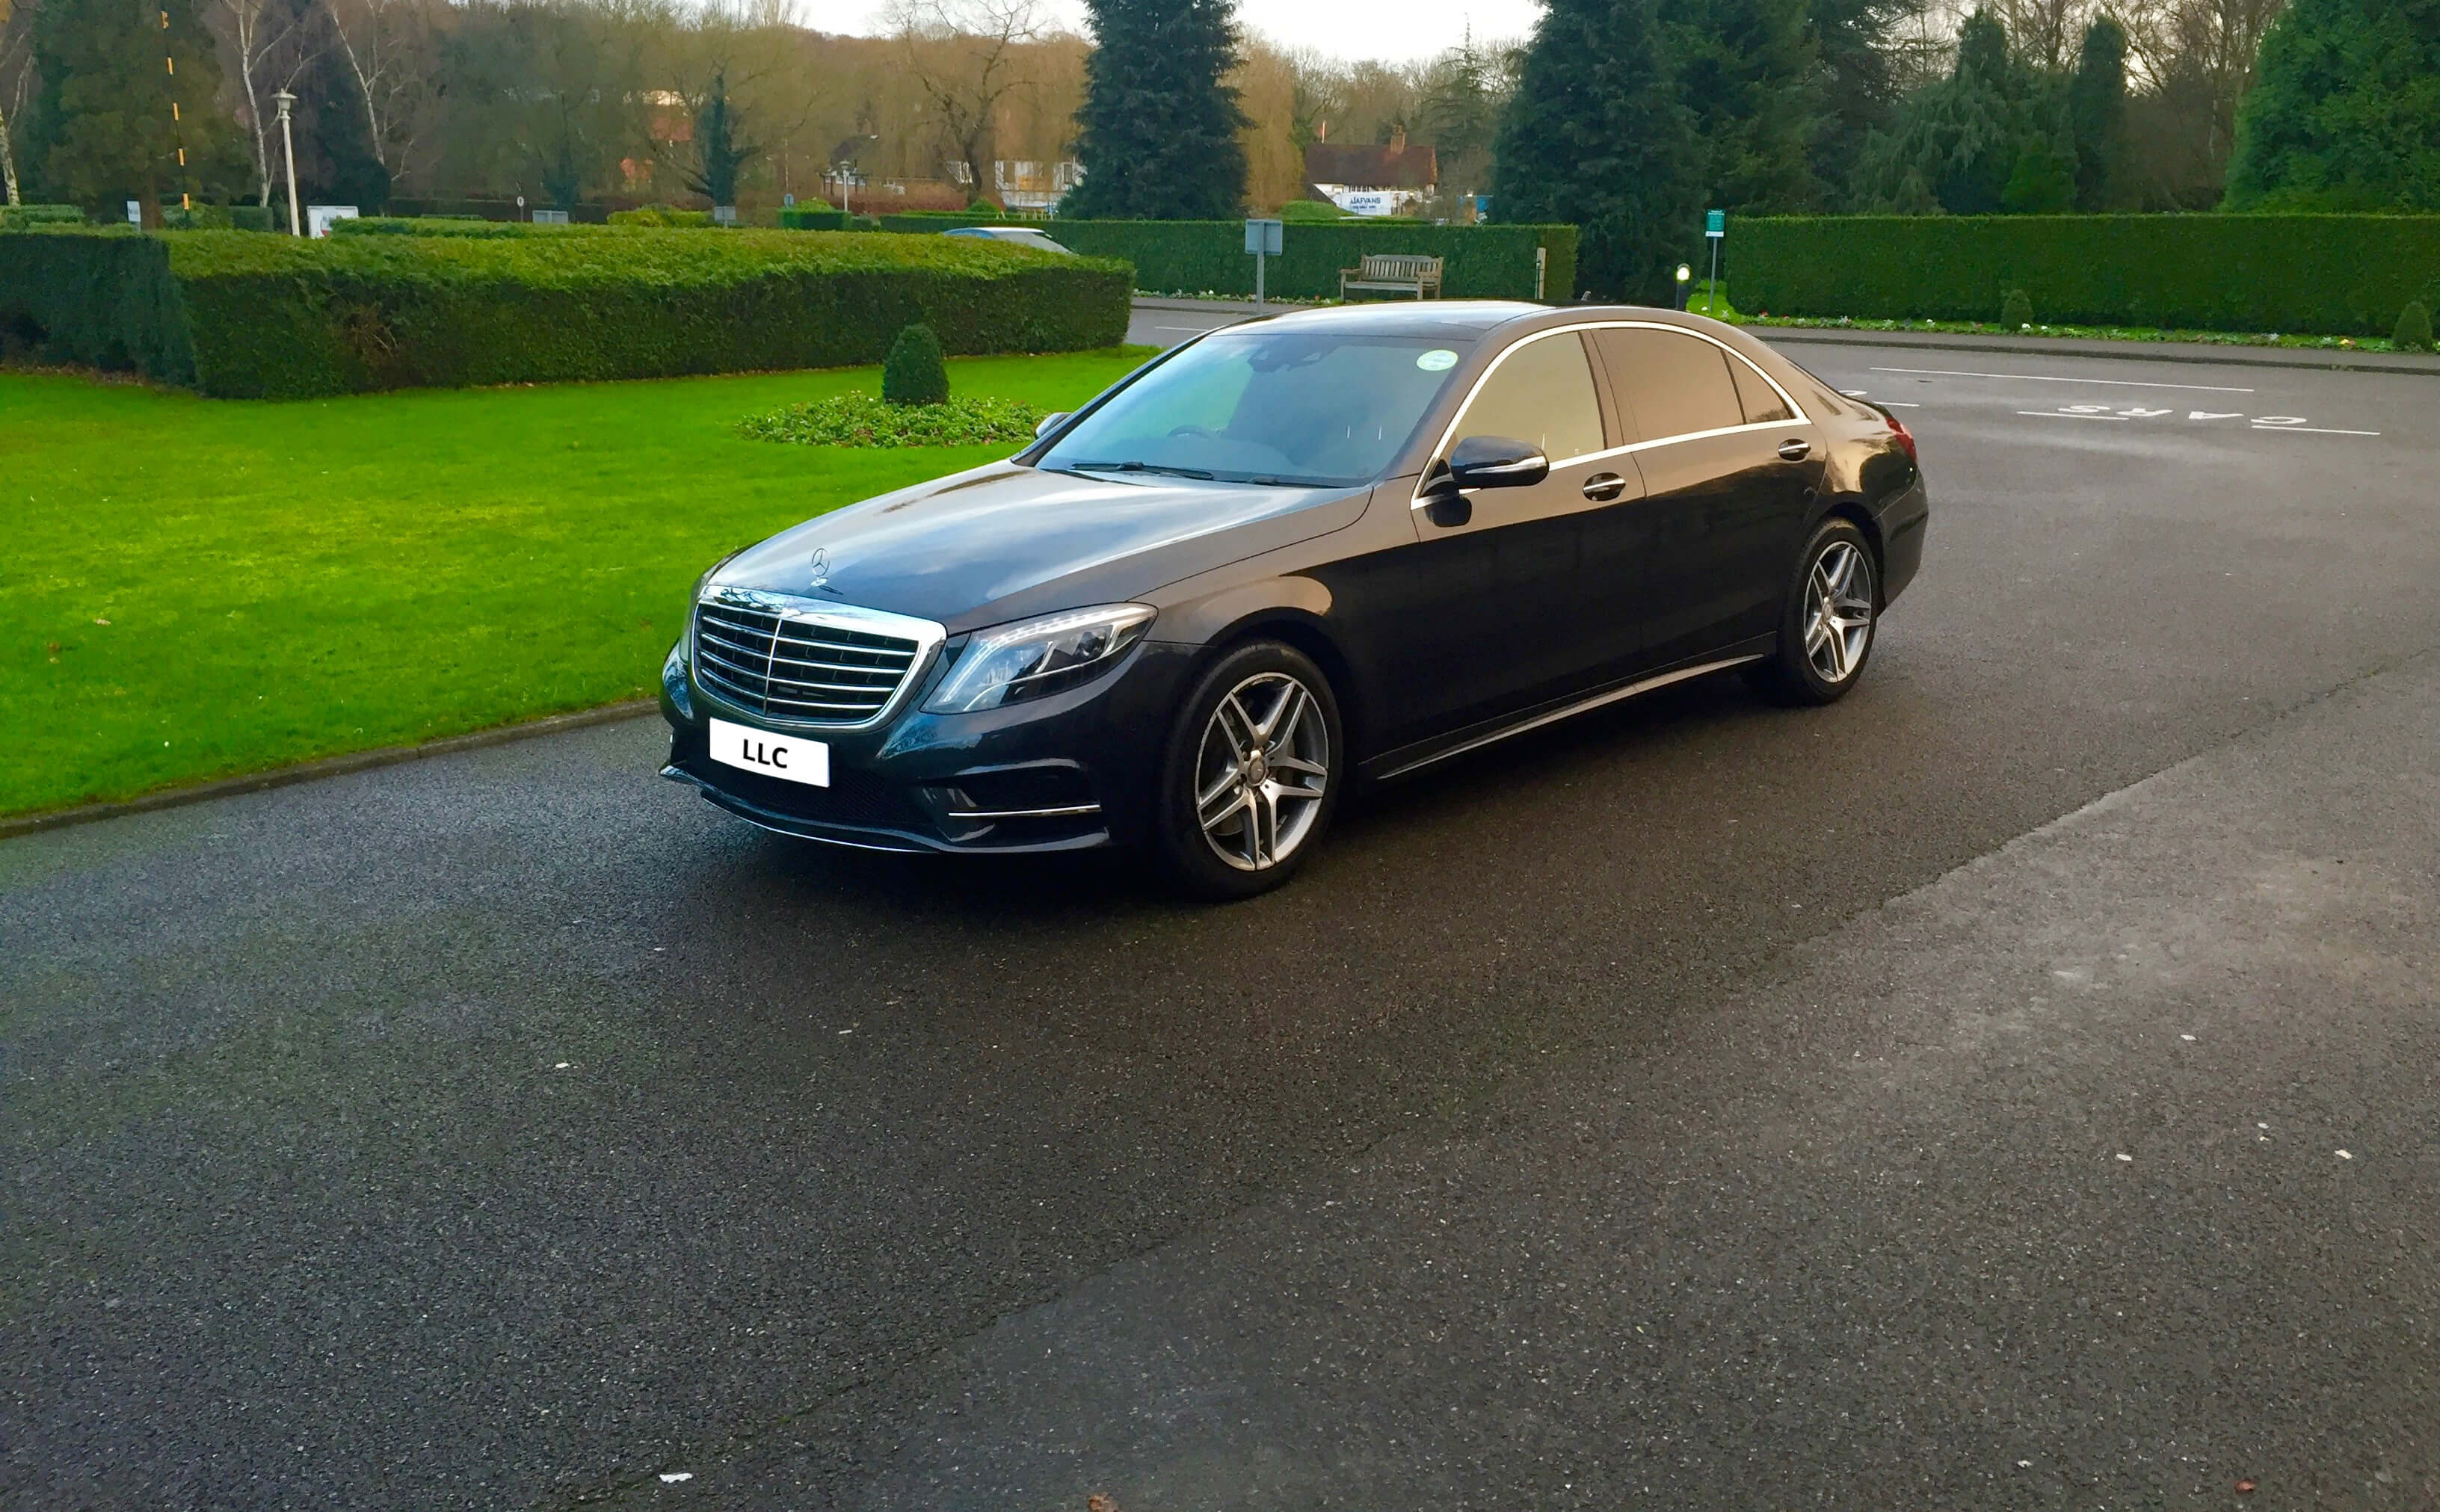 Mercedes S Class - Luxury Chauffeur Vehicle